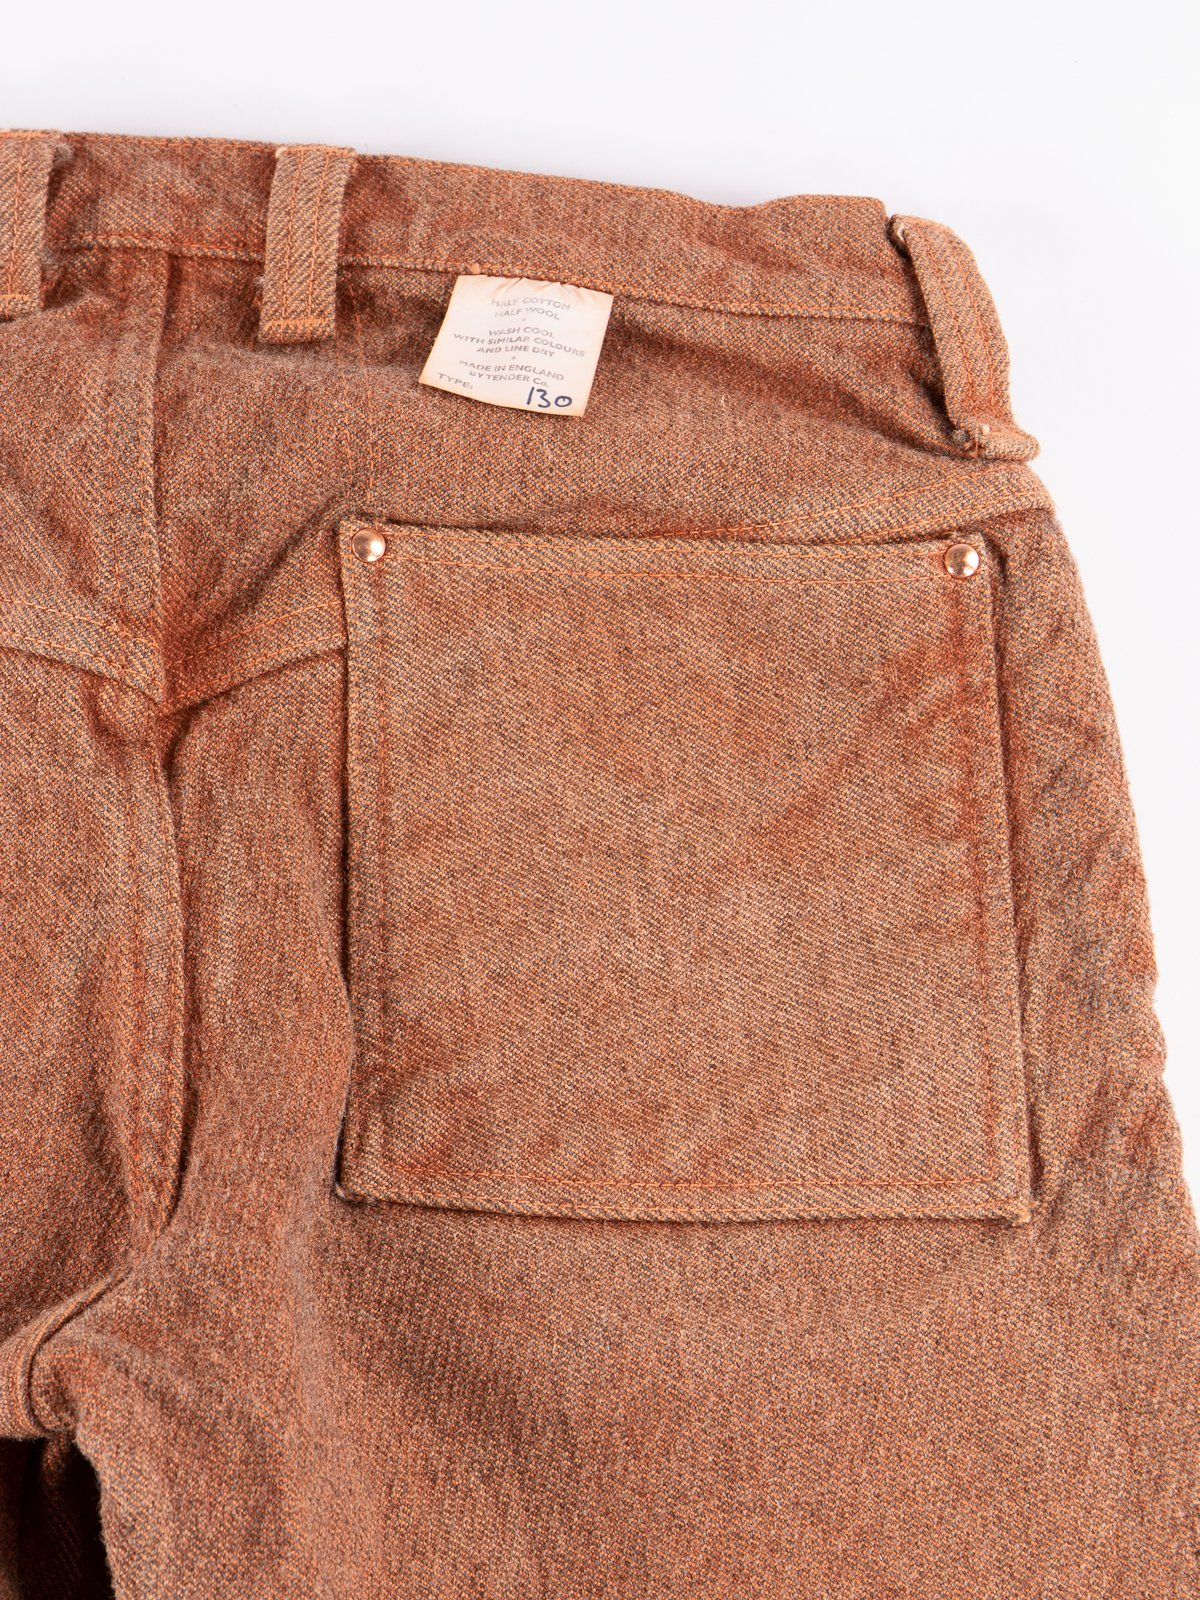 Red Ochre Dye Tapered Jean - Image 6